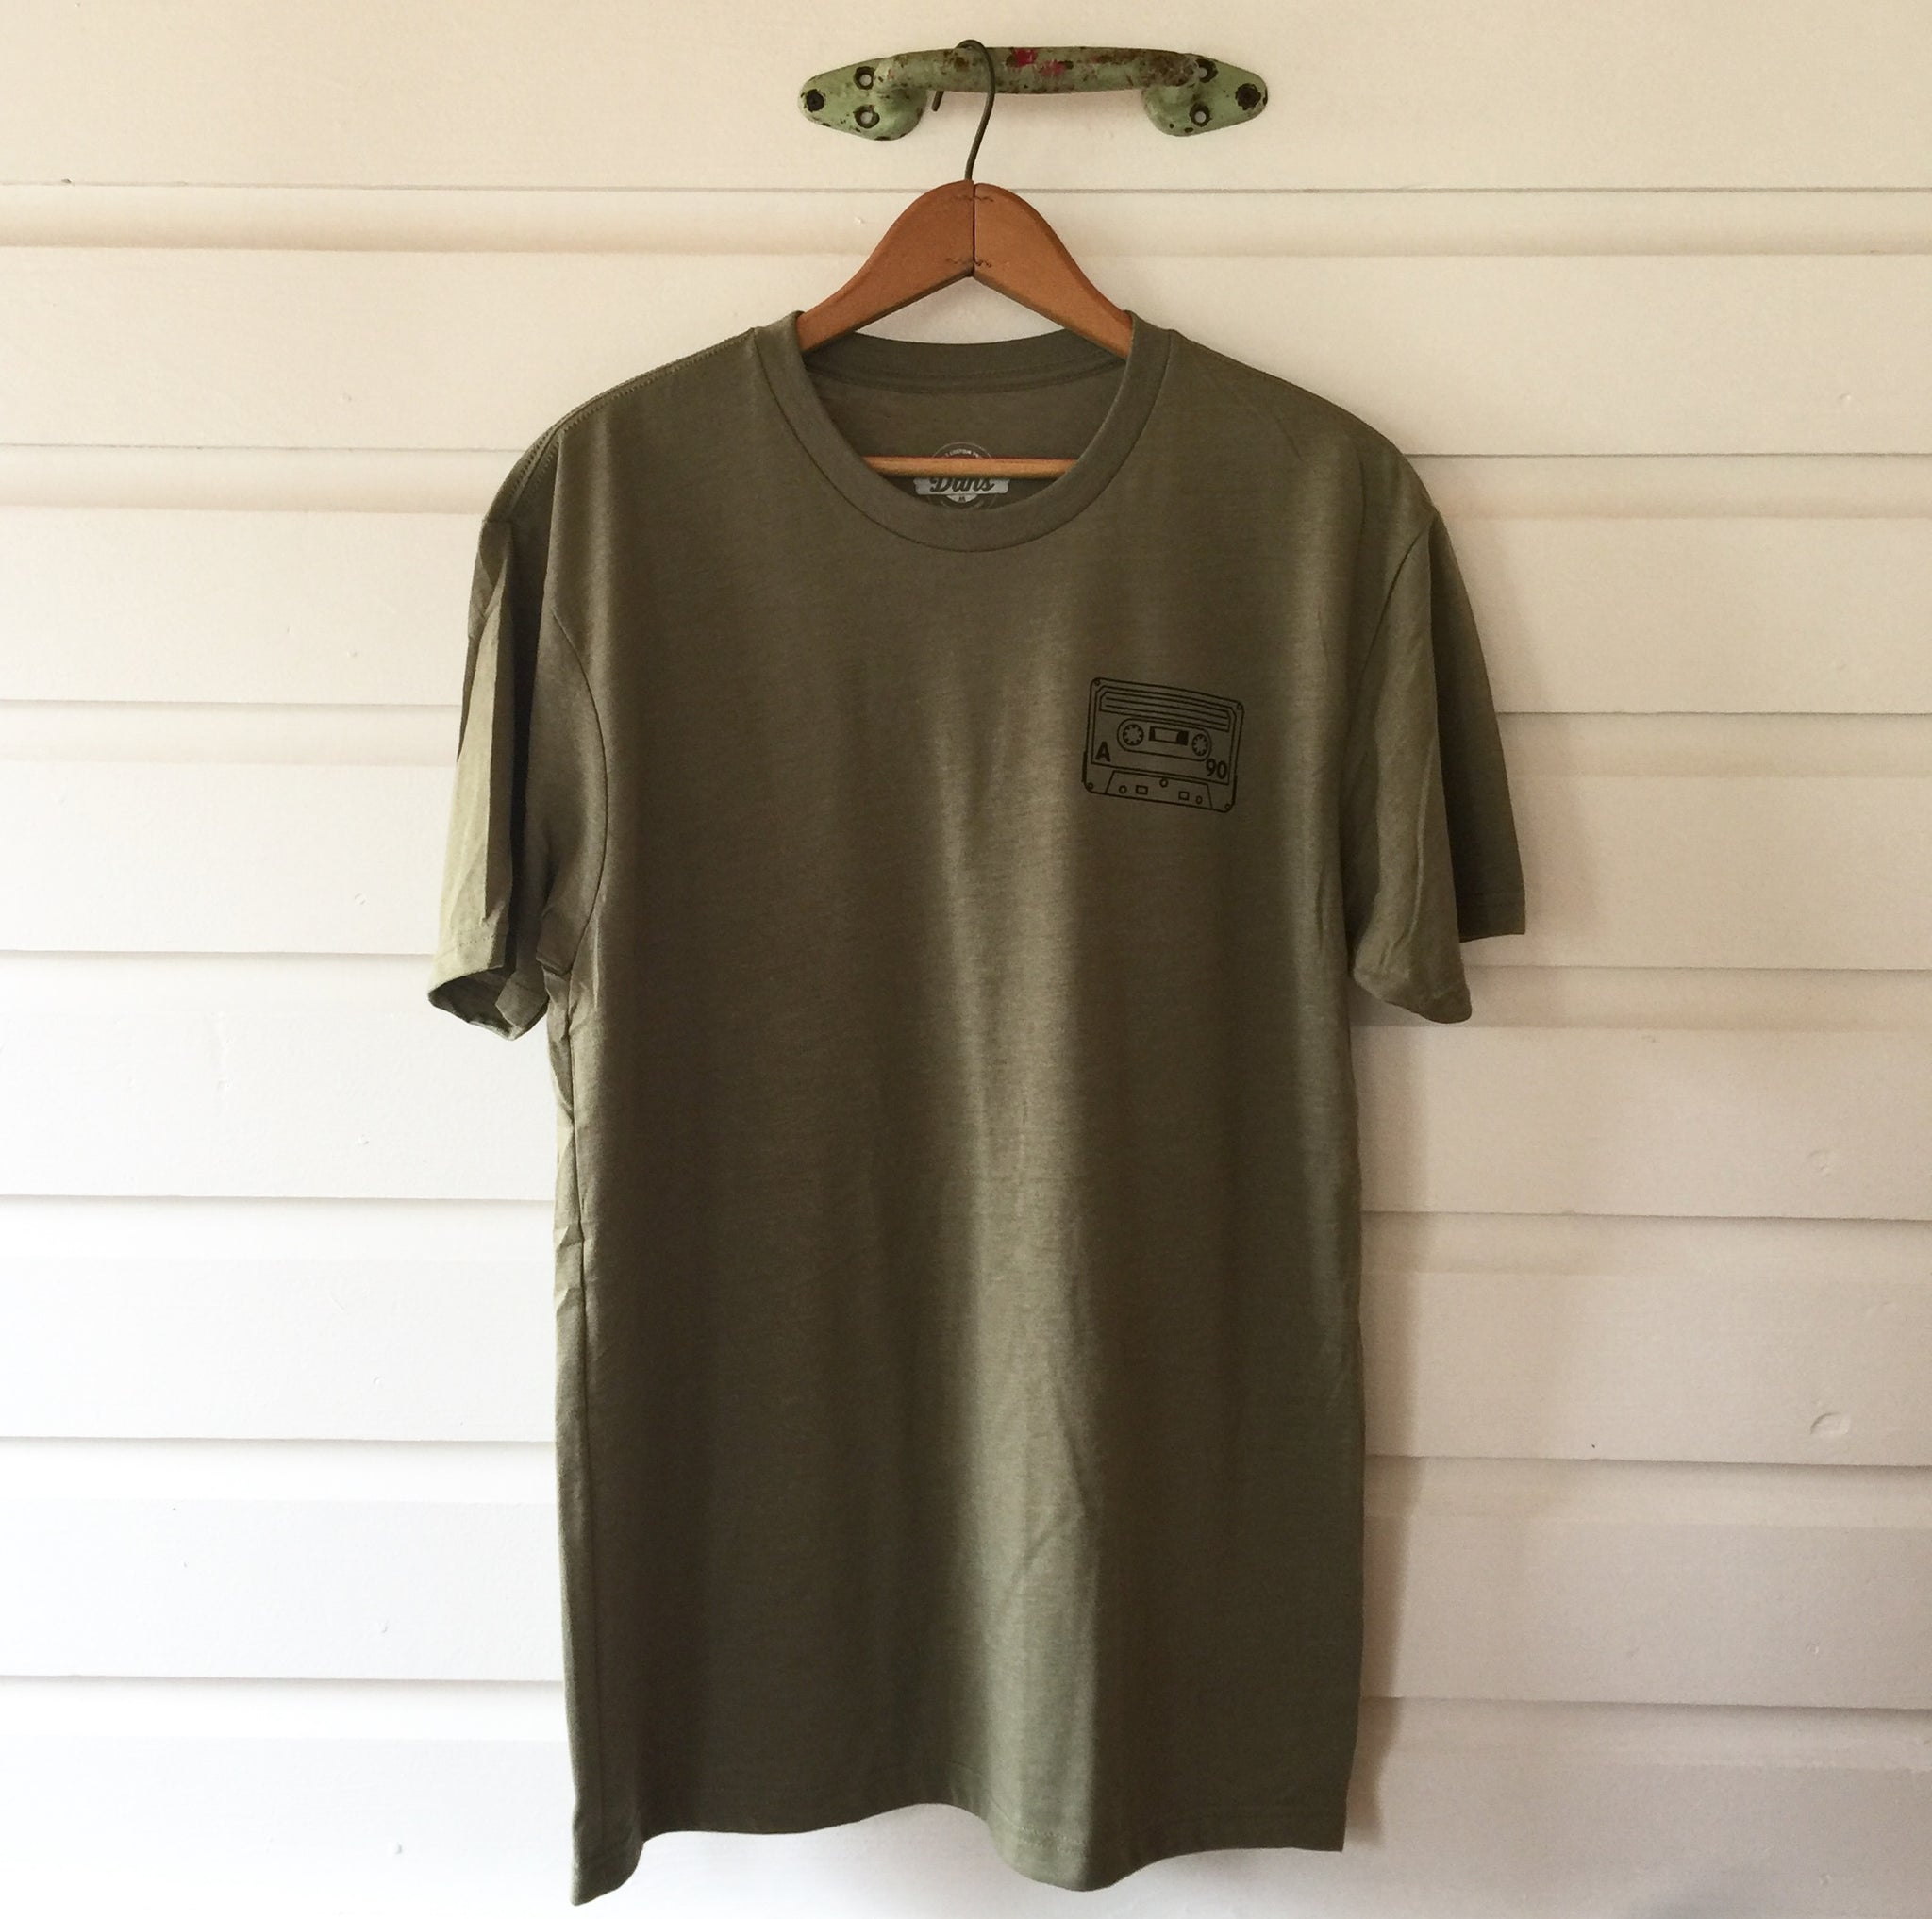 Cassette Tape Tee Shirt (Light Olive)